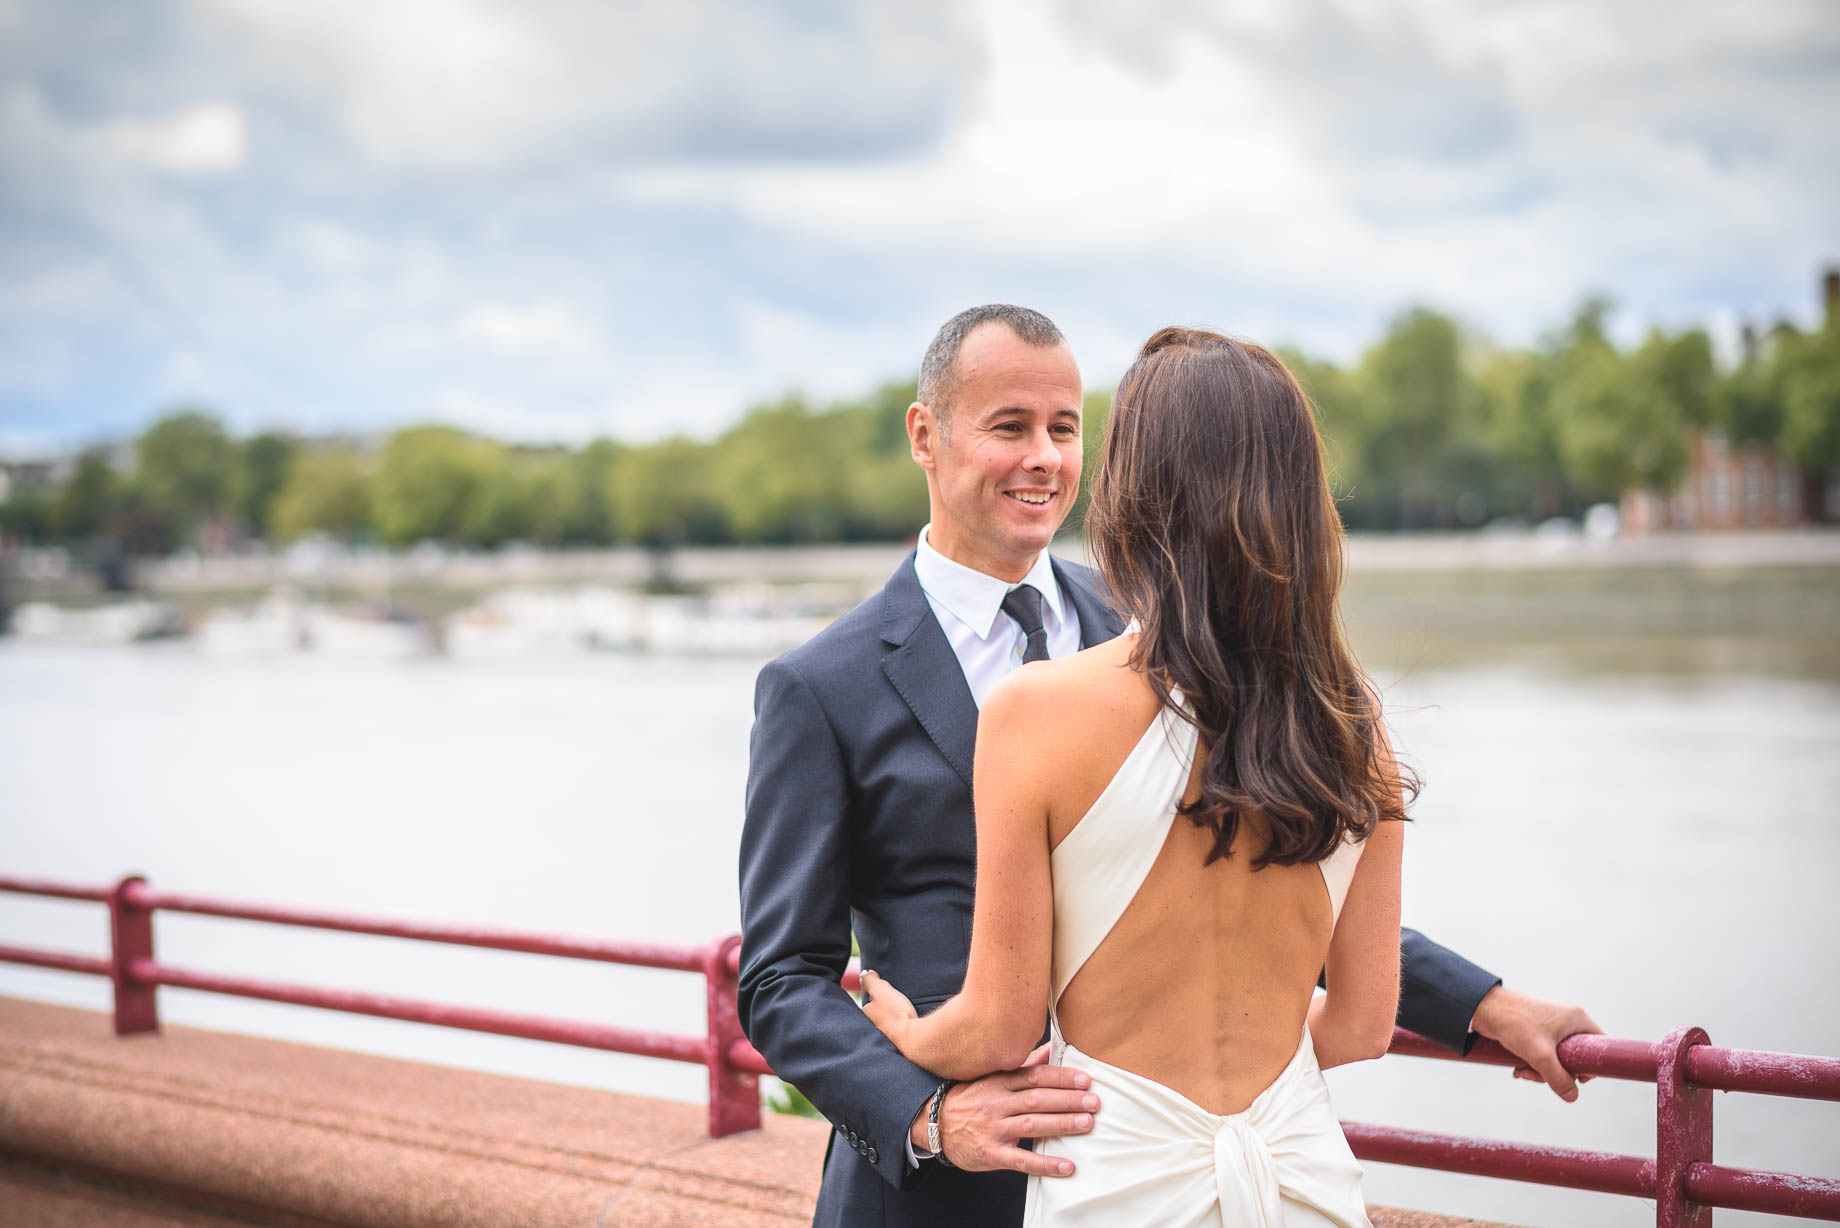 Chelsea and Mayfair wedding photography - Guy Collier - Vicki and Damien (88 of 126)